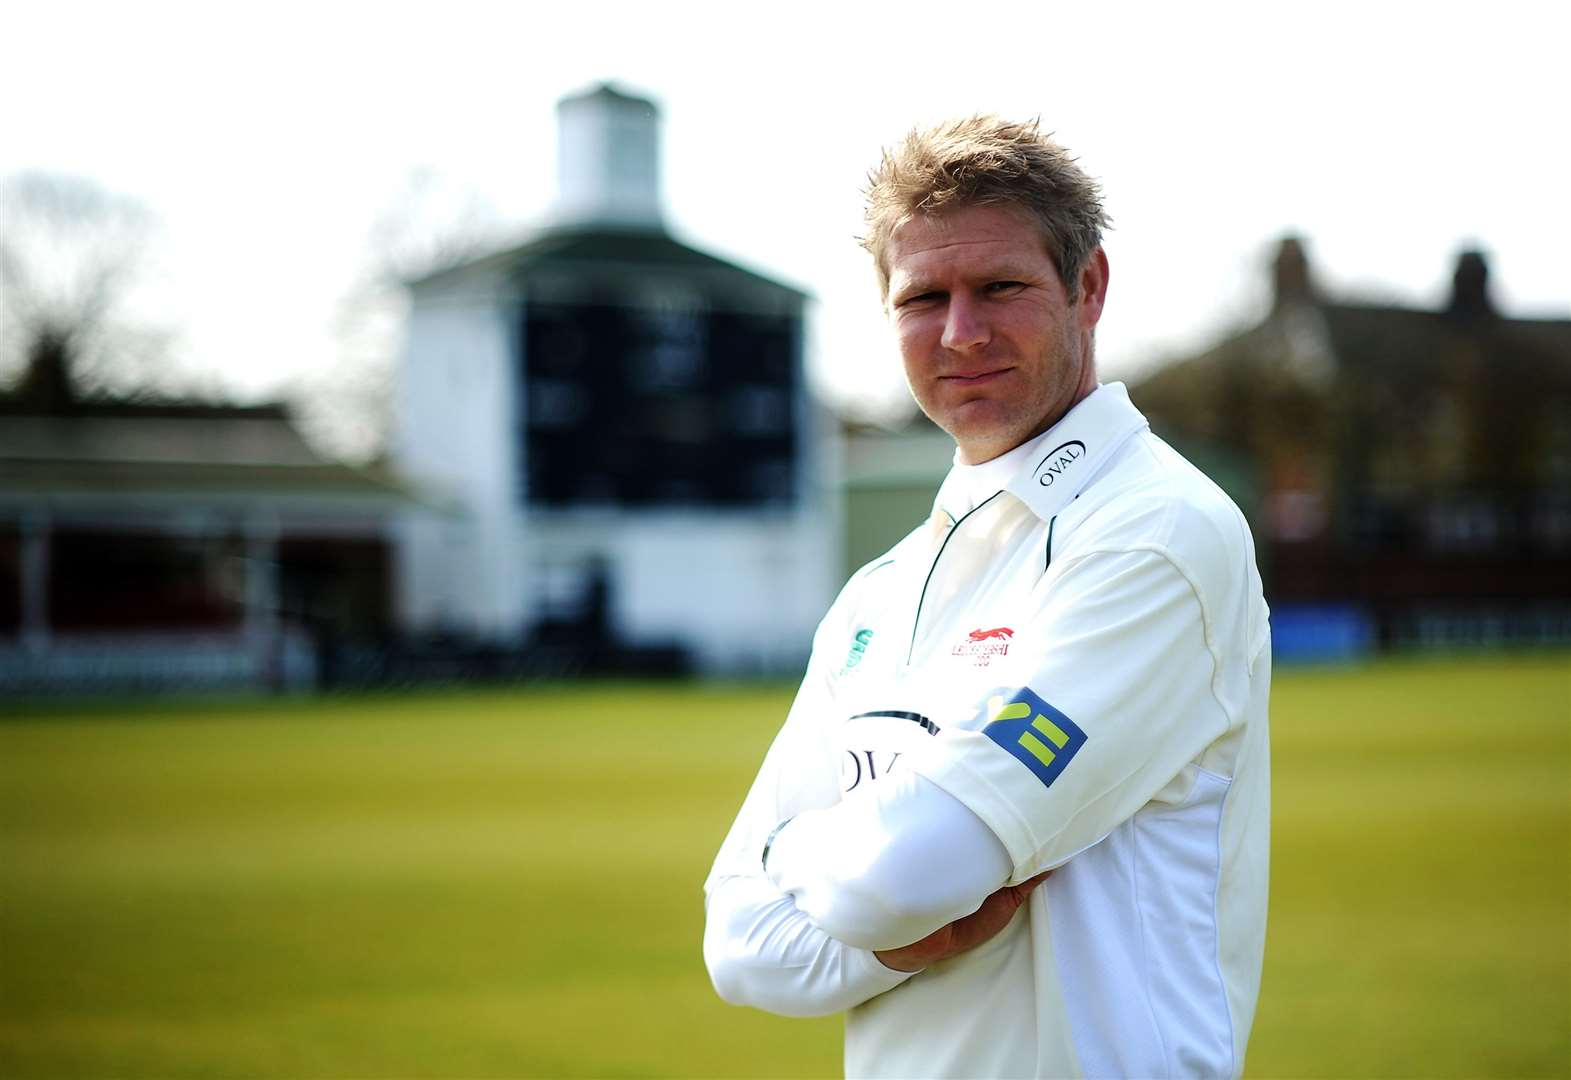 Ashes to ashes: England cricket hero forging new career as barbecue expert